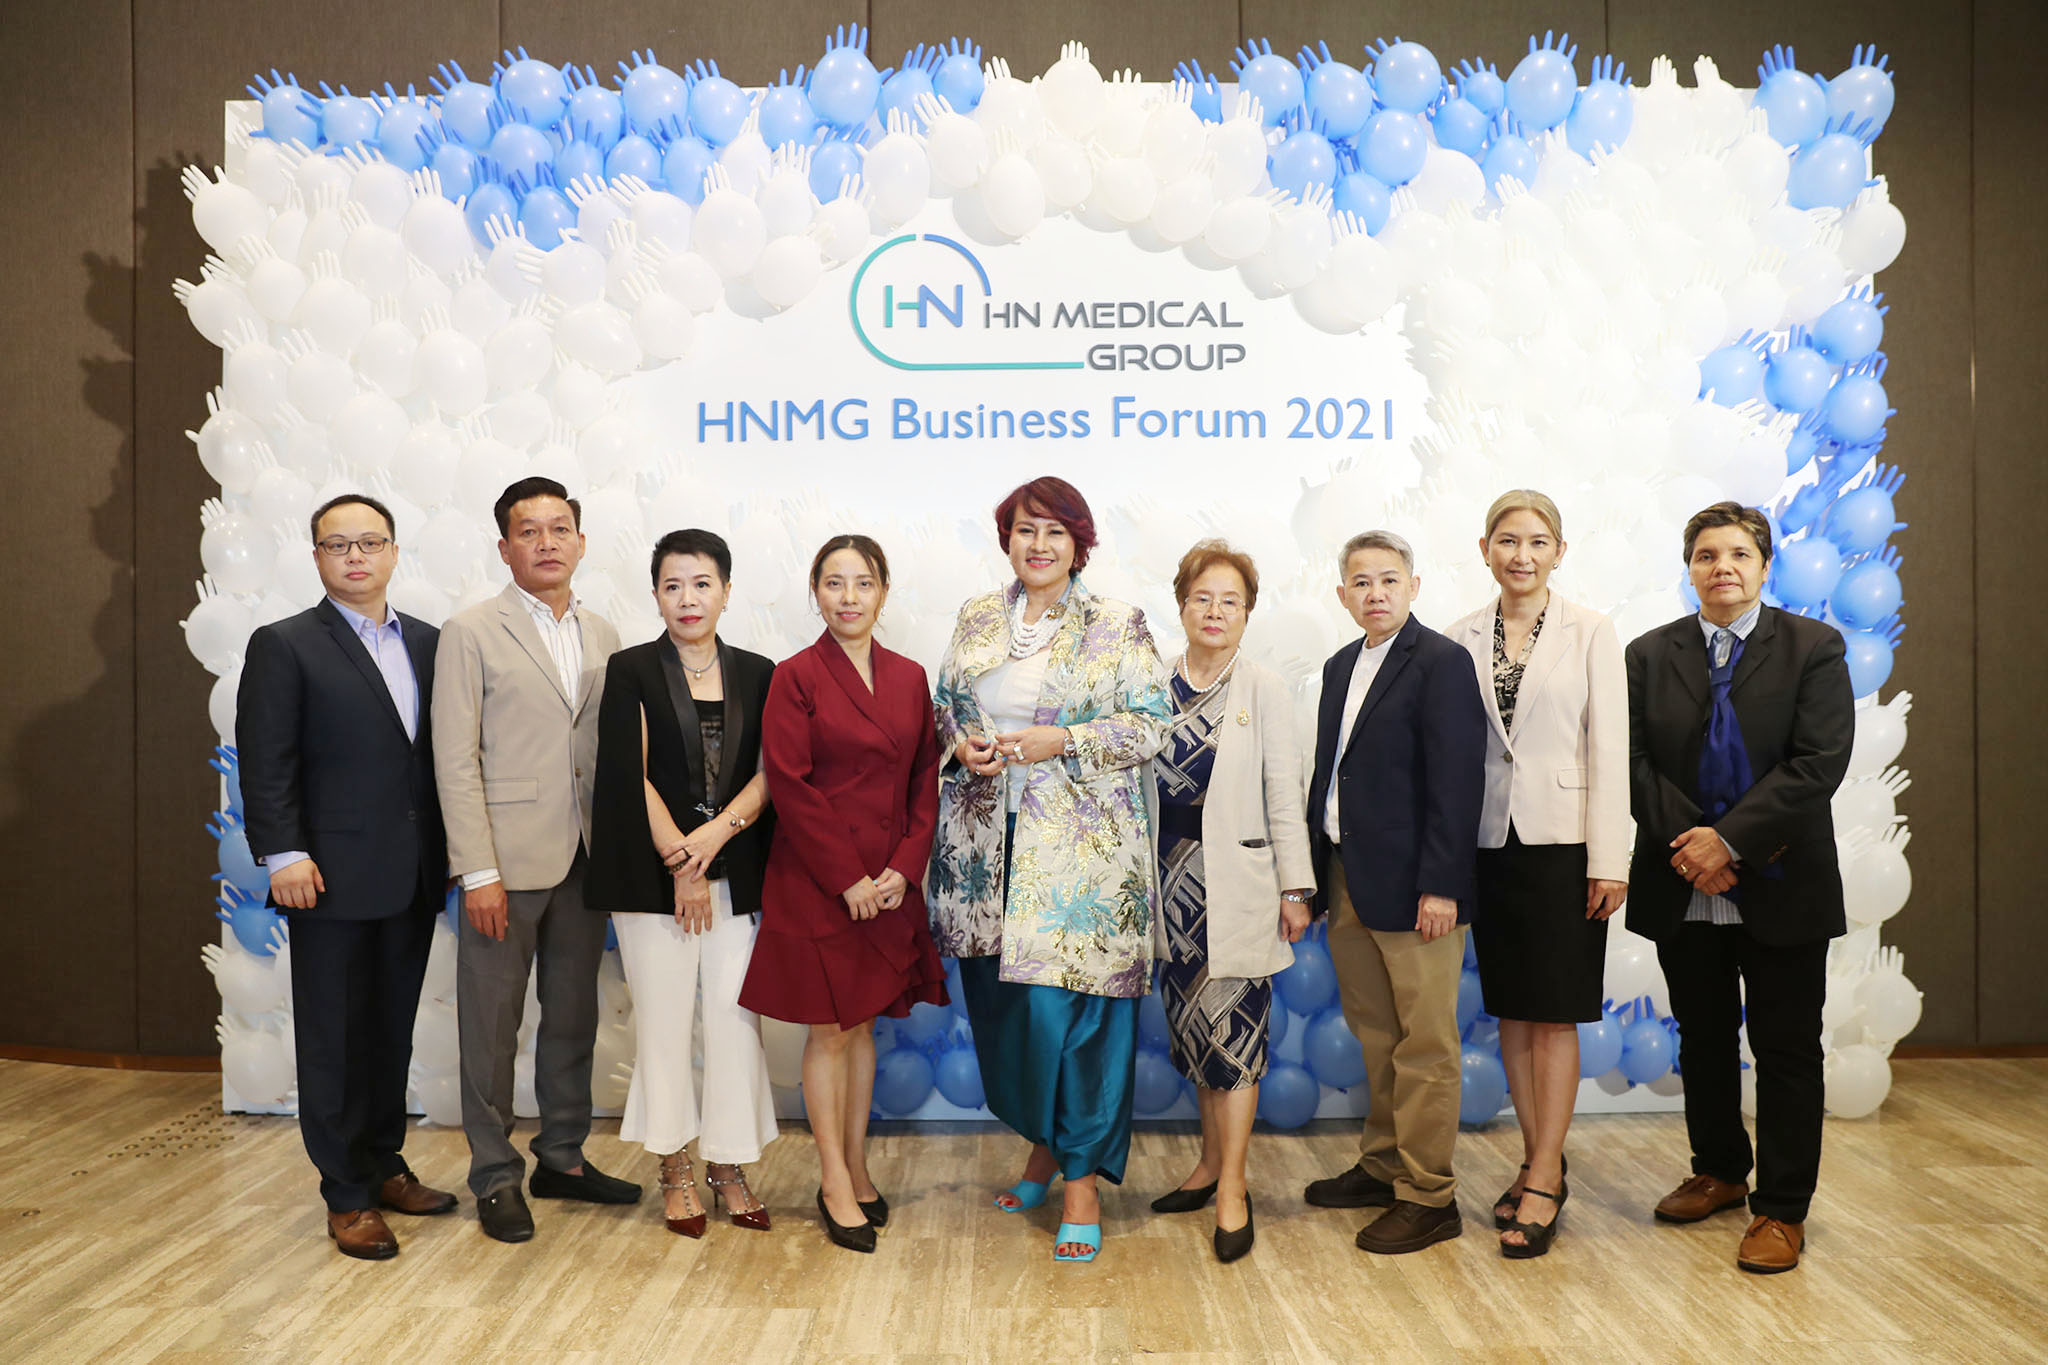 HN Medical Group stages HNMG Business Forum 2021